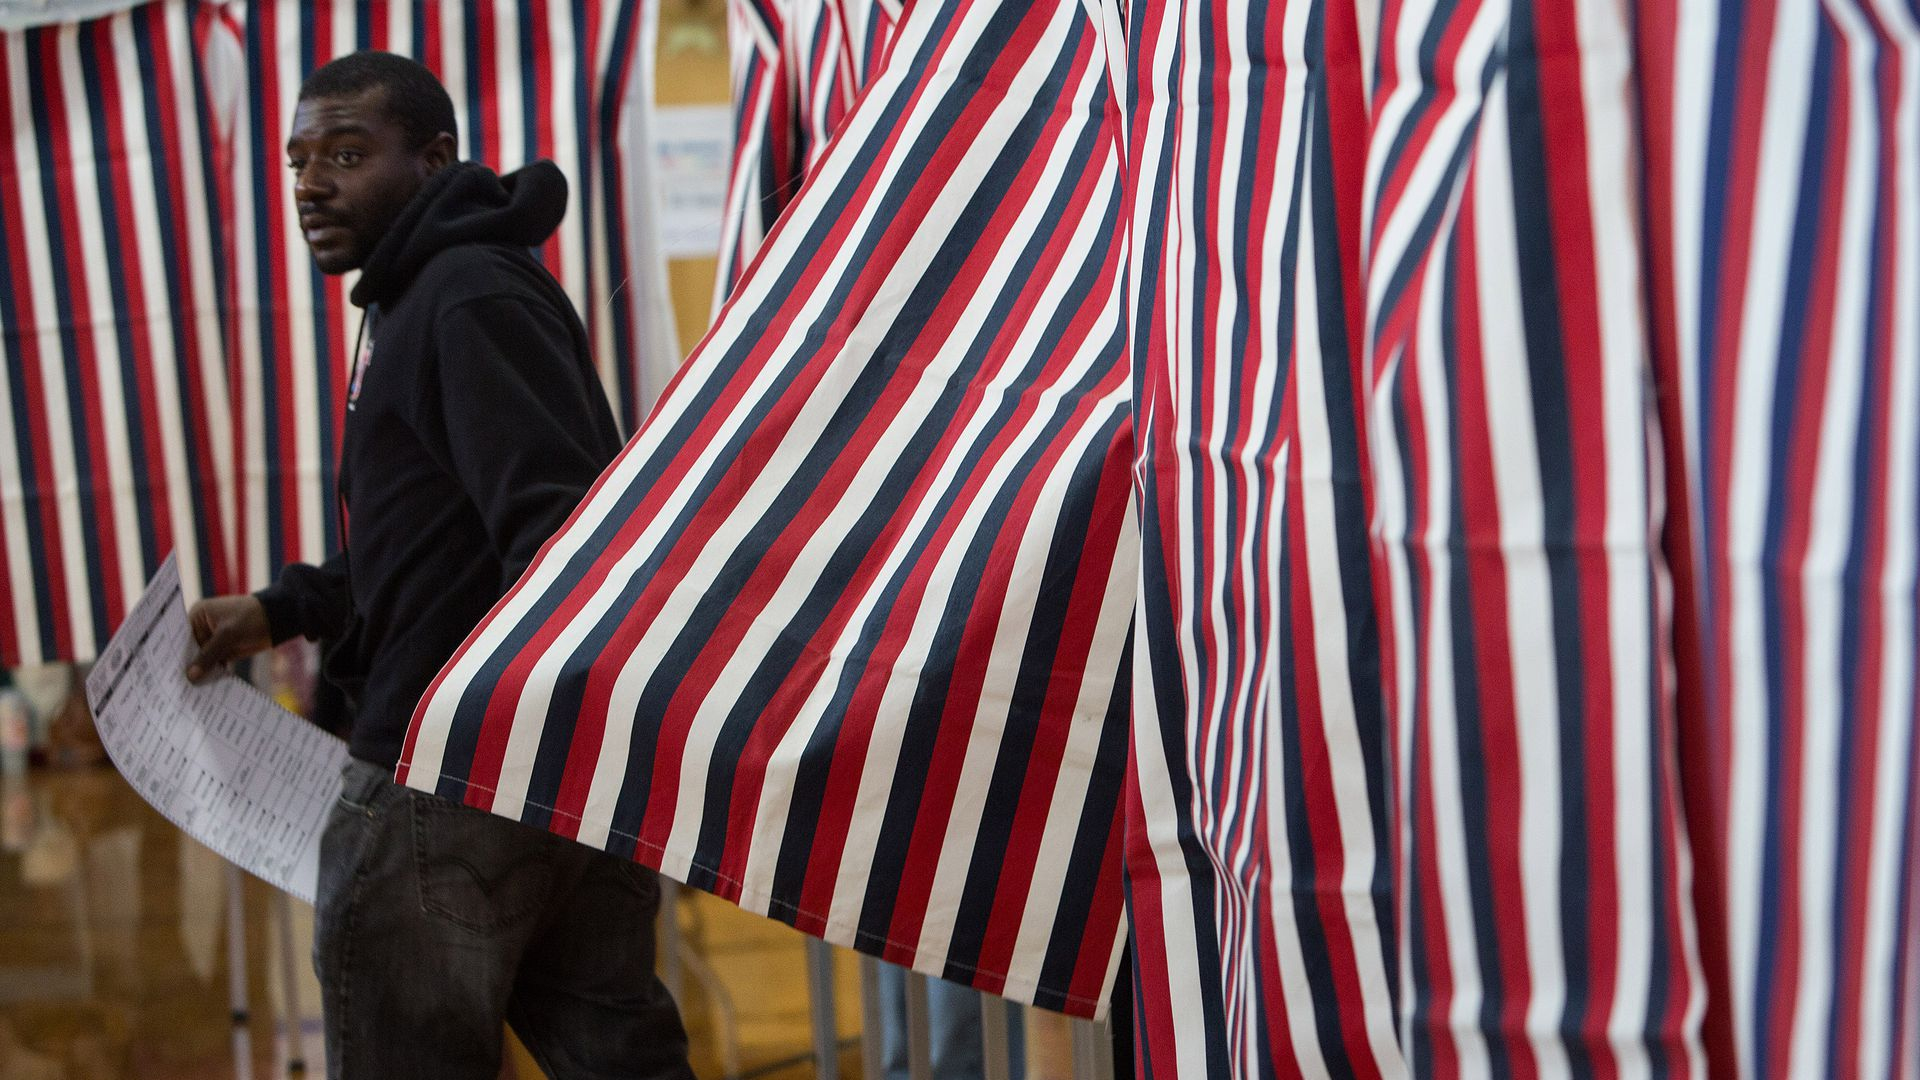 A New Hampshire voter casts his ballot at Amherst Street Elementary School.